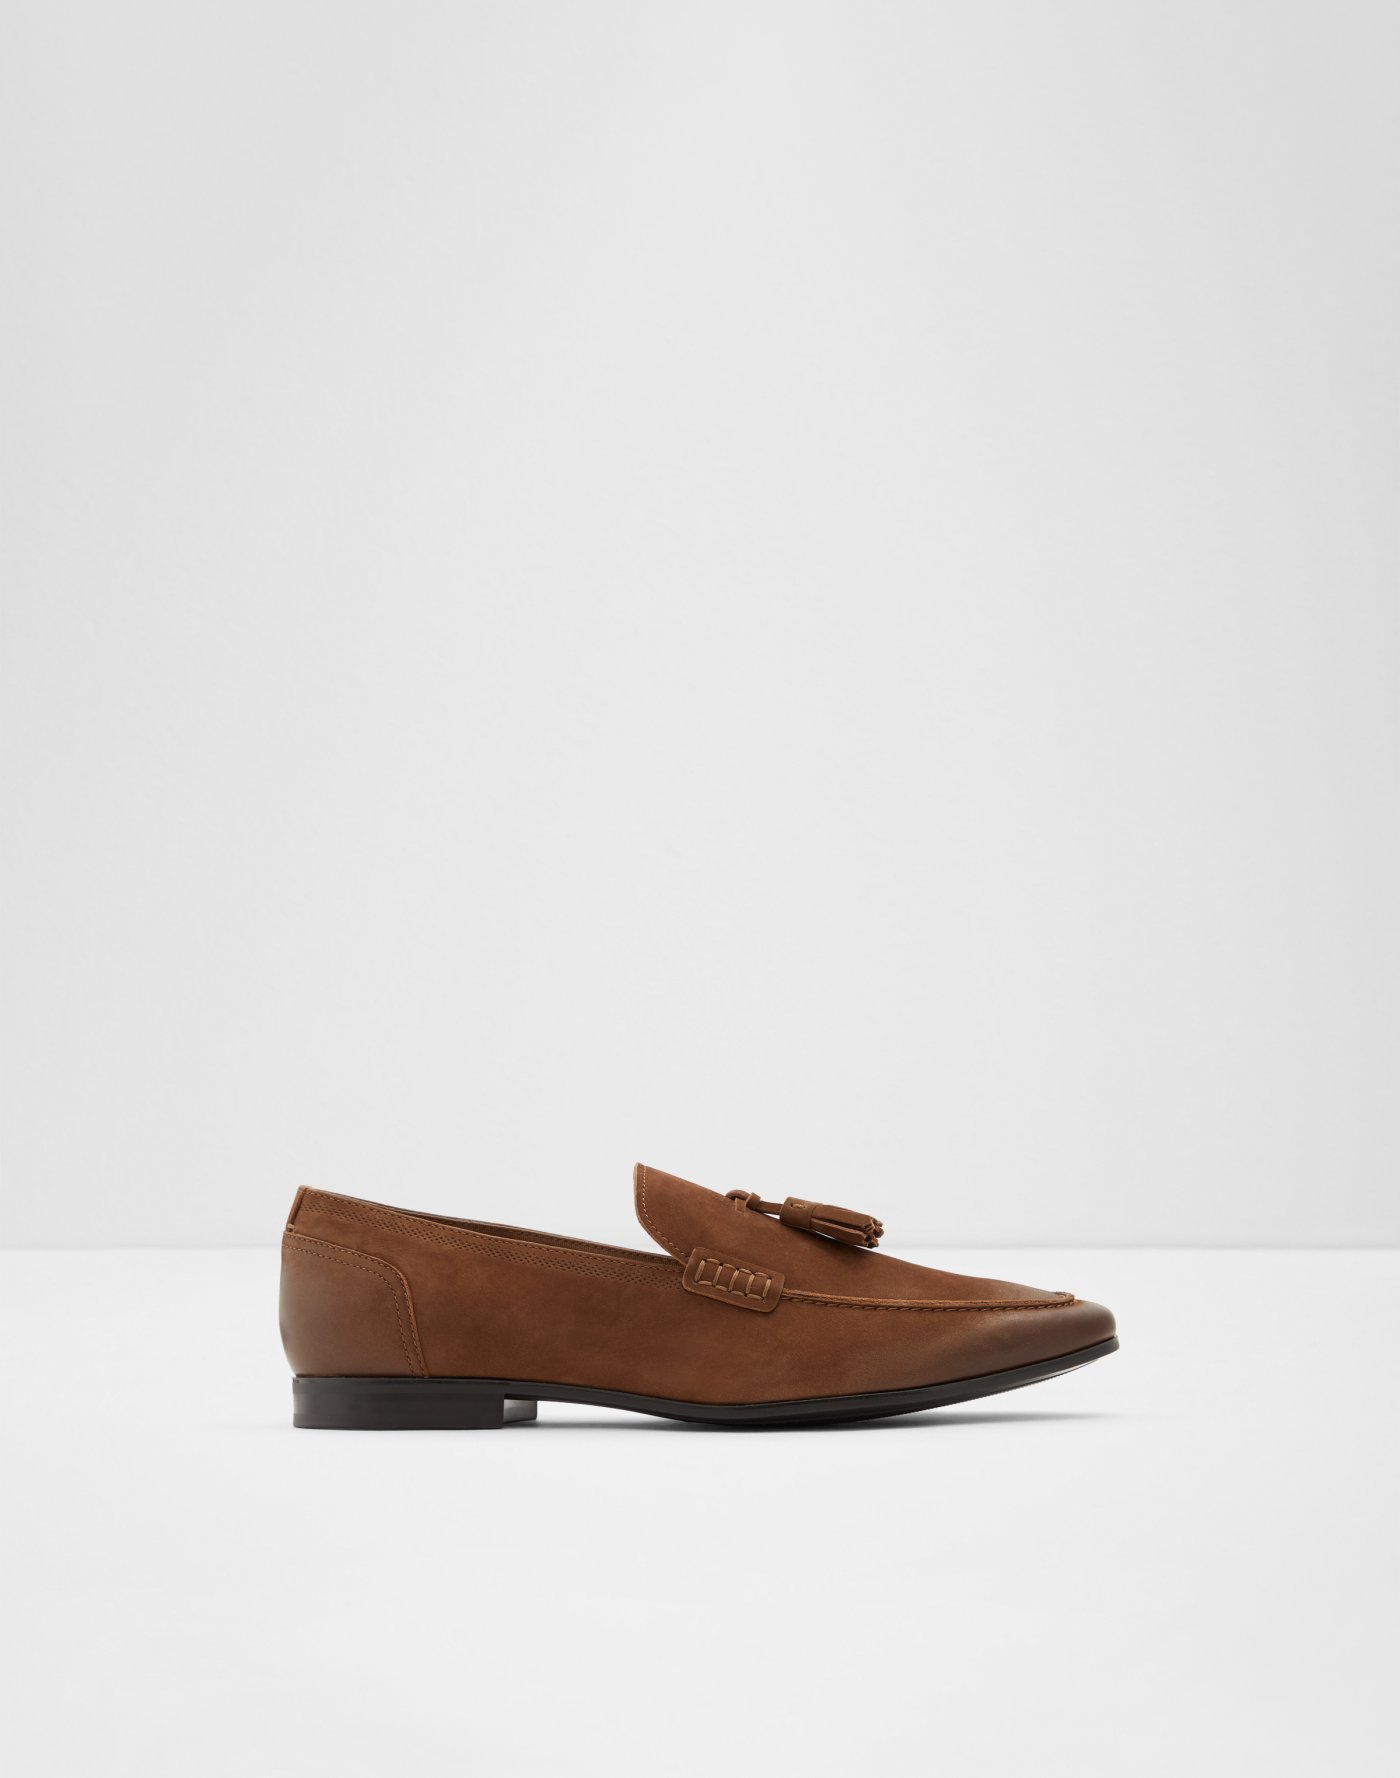 fdfa41a12c6b3 Loafers For Men | Men's Casual and Dress Loafers | ALDO US | Aldoshoes.com  US